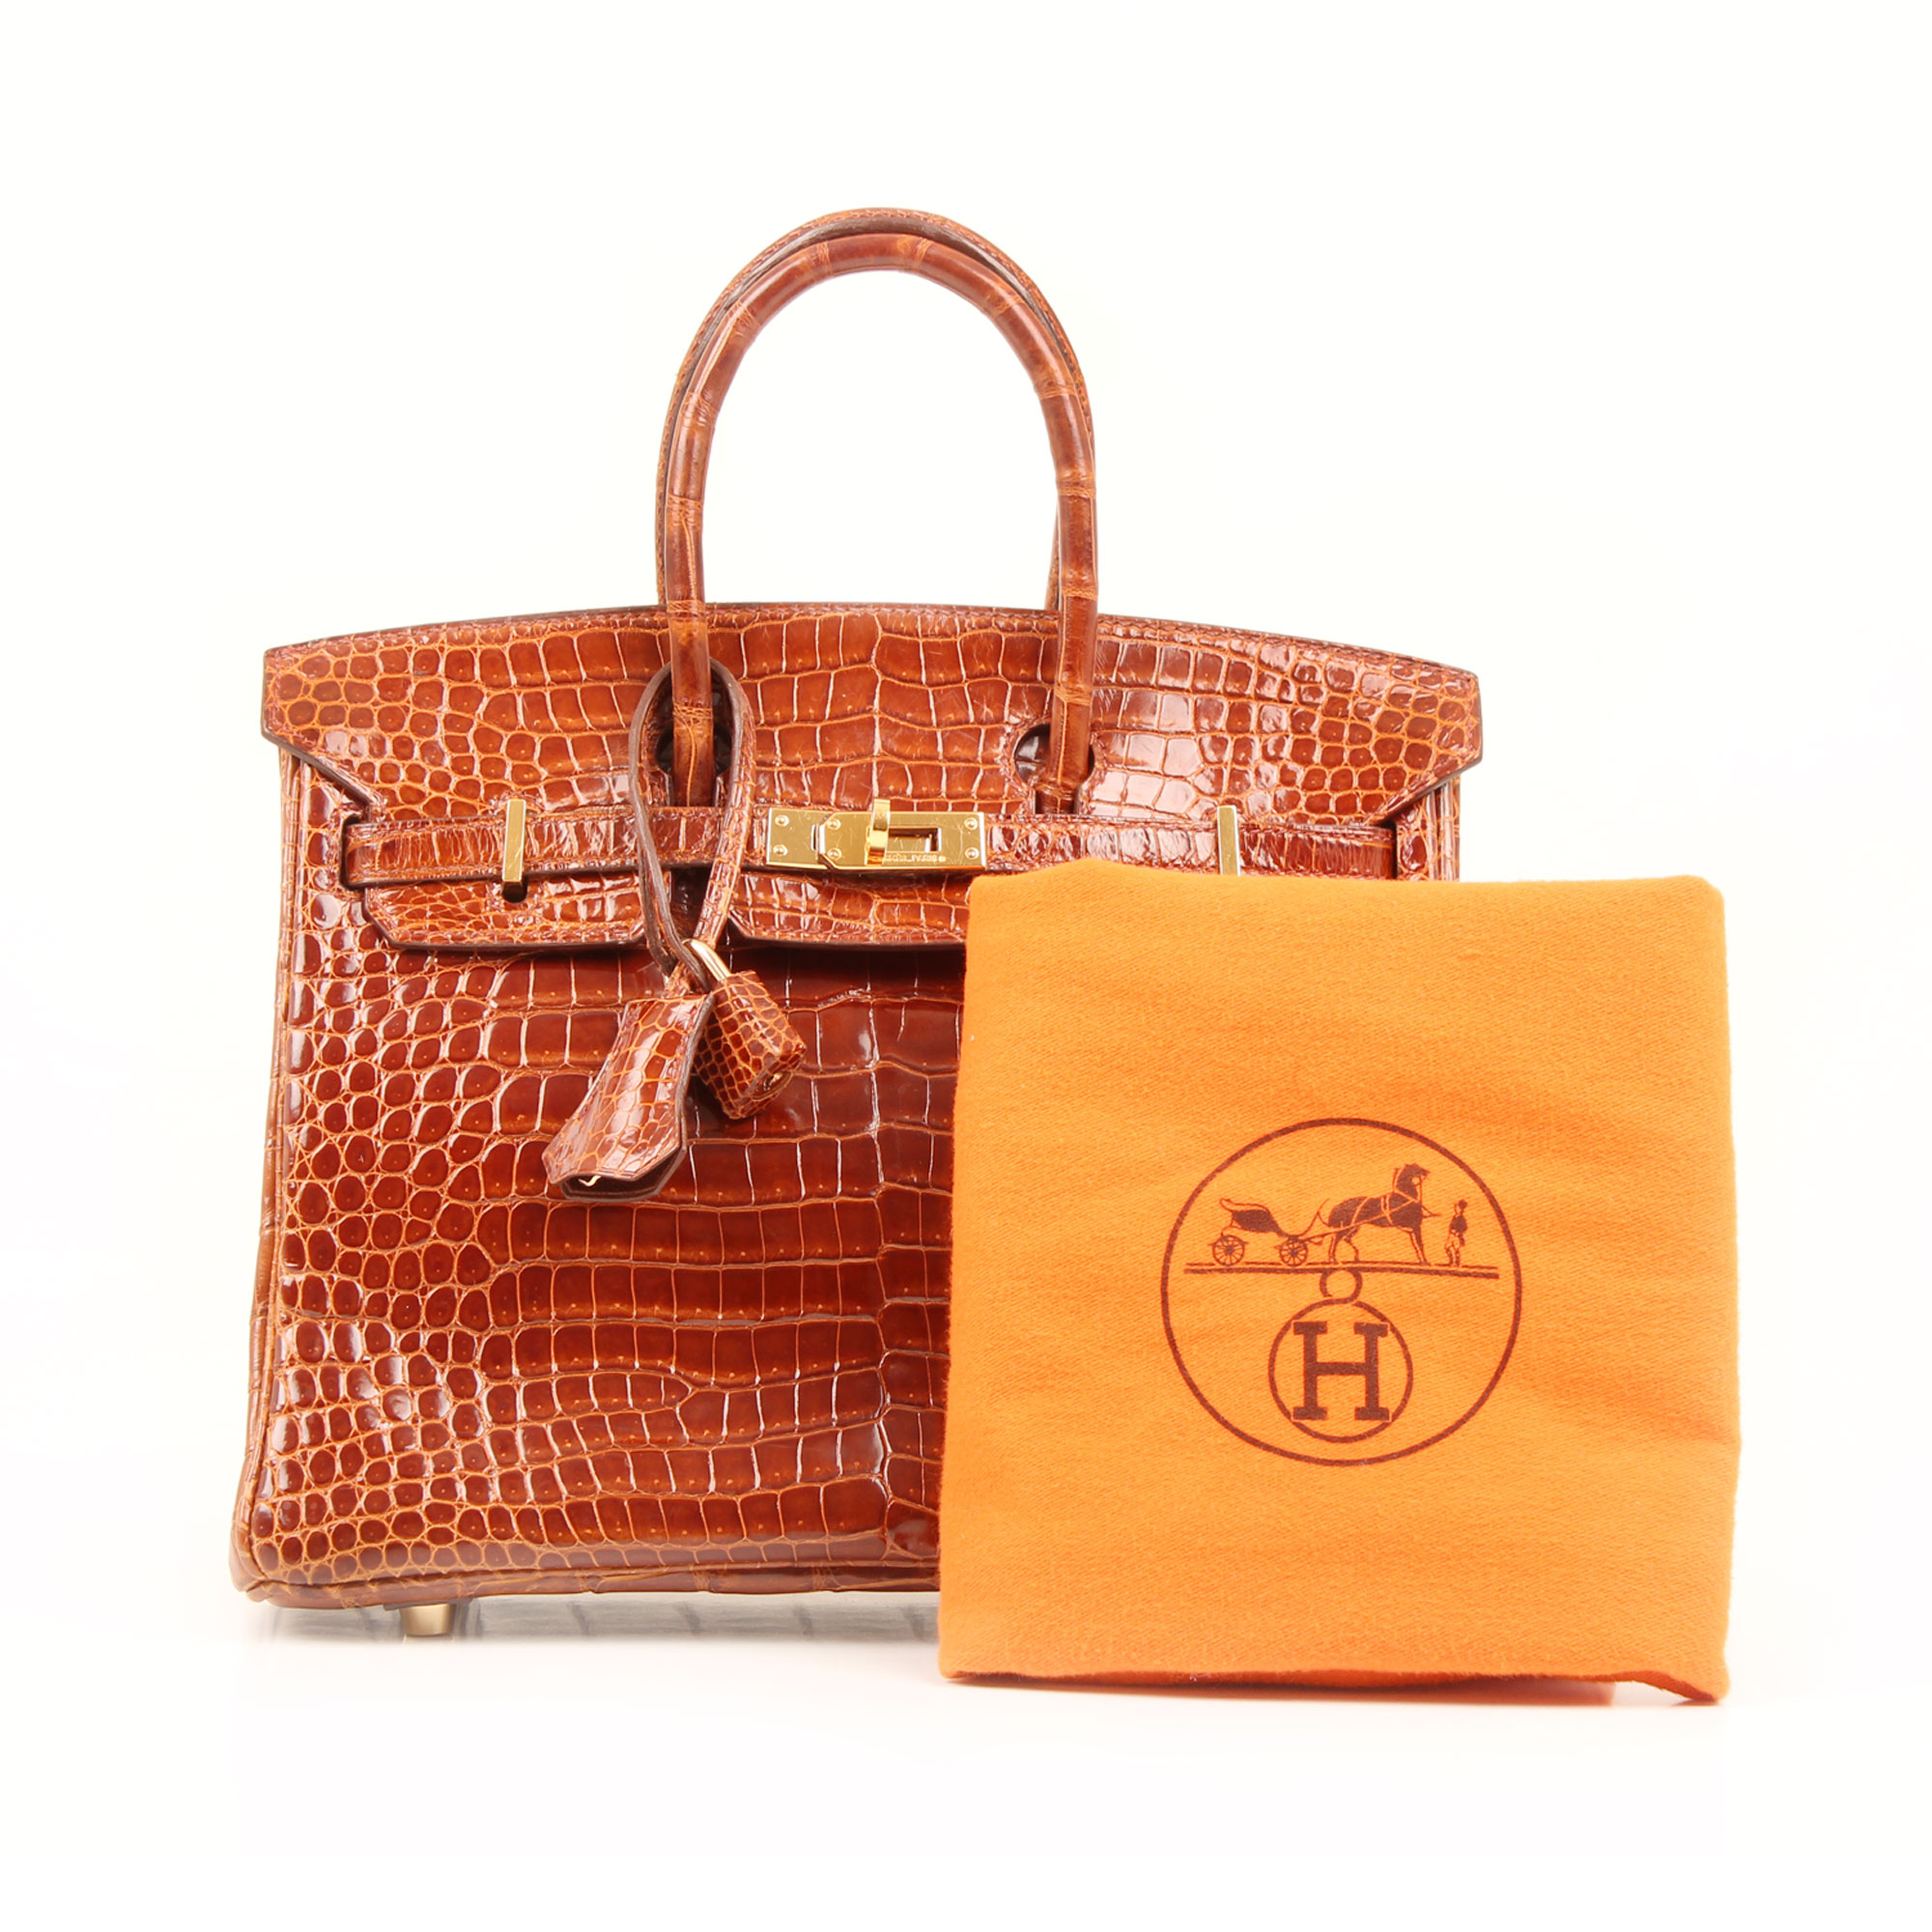 Dustbag image of hermes birkin 25 poroso soft whisky bag